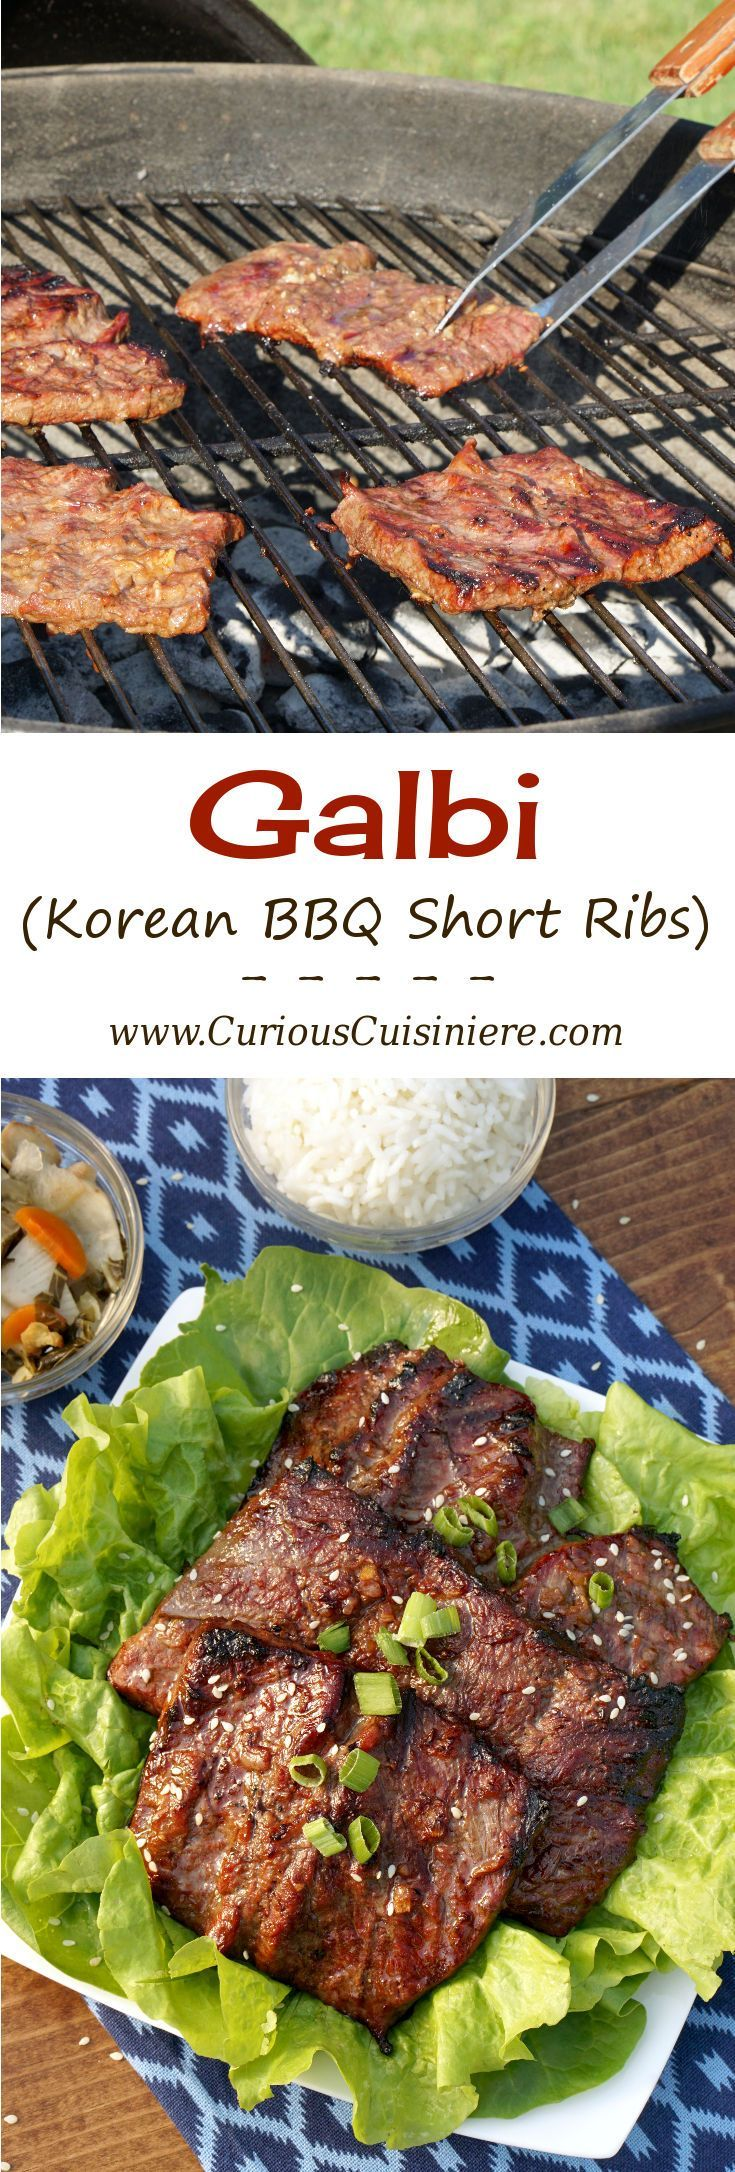 Galbi, Korean BBQ Short Ribs, takes grilled short ribs to a whole new level with a unique cut and a sweet and salty marinade. | www.CuriousCuisiniere.com